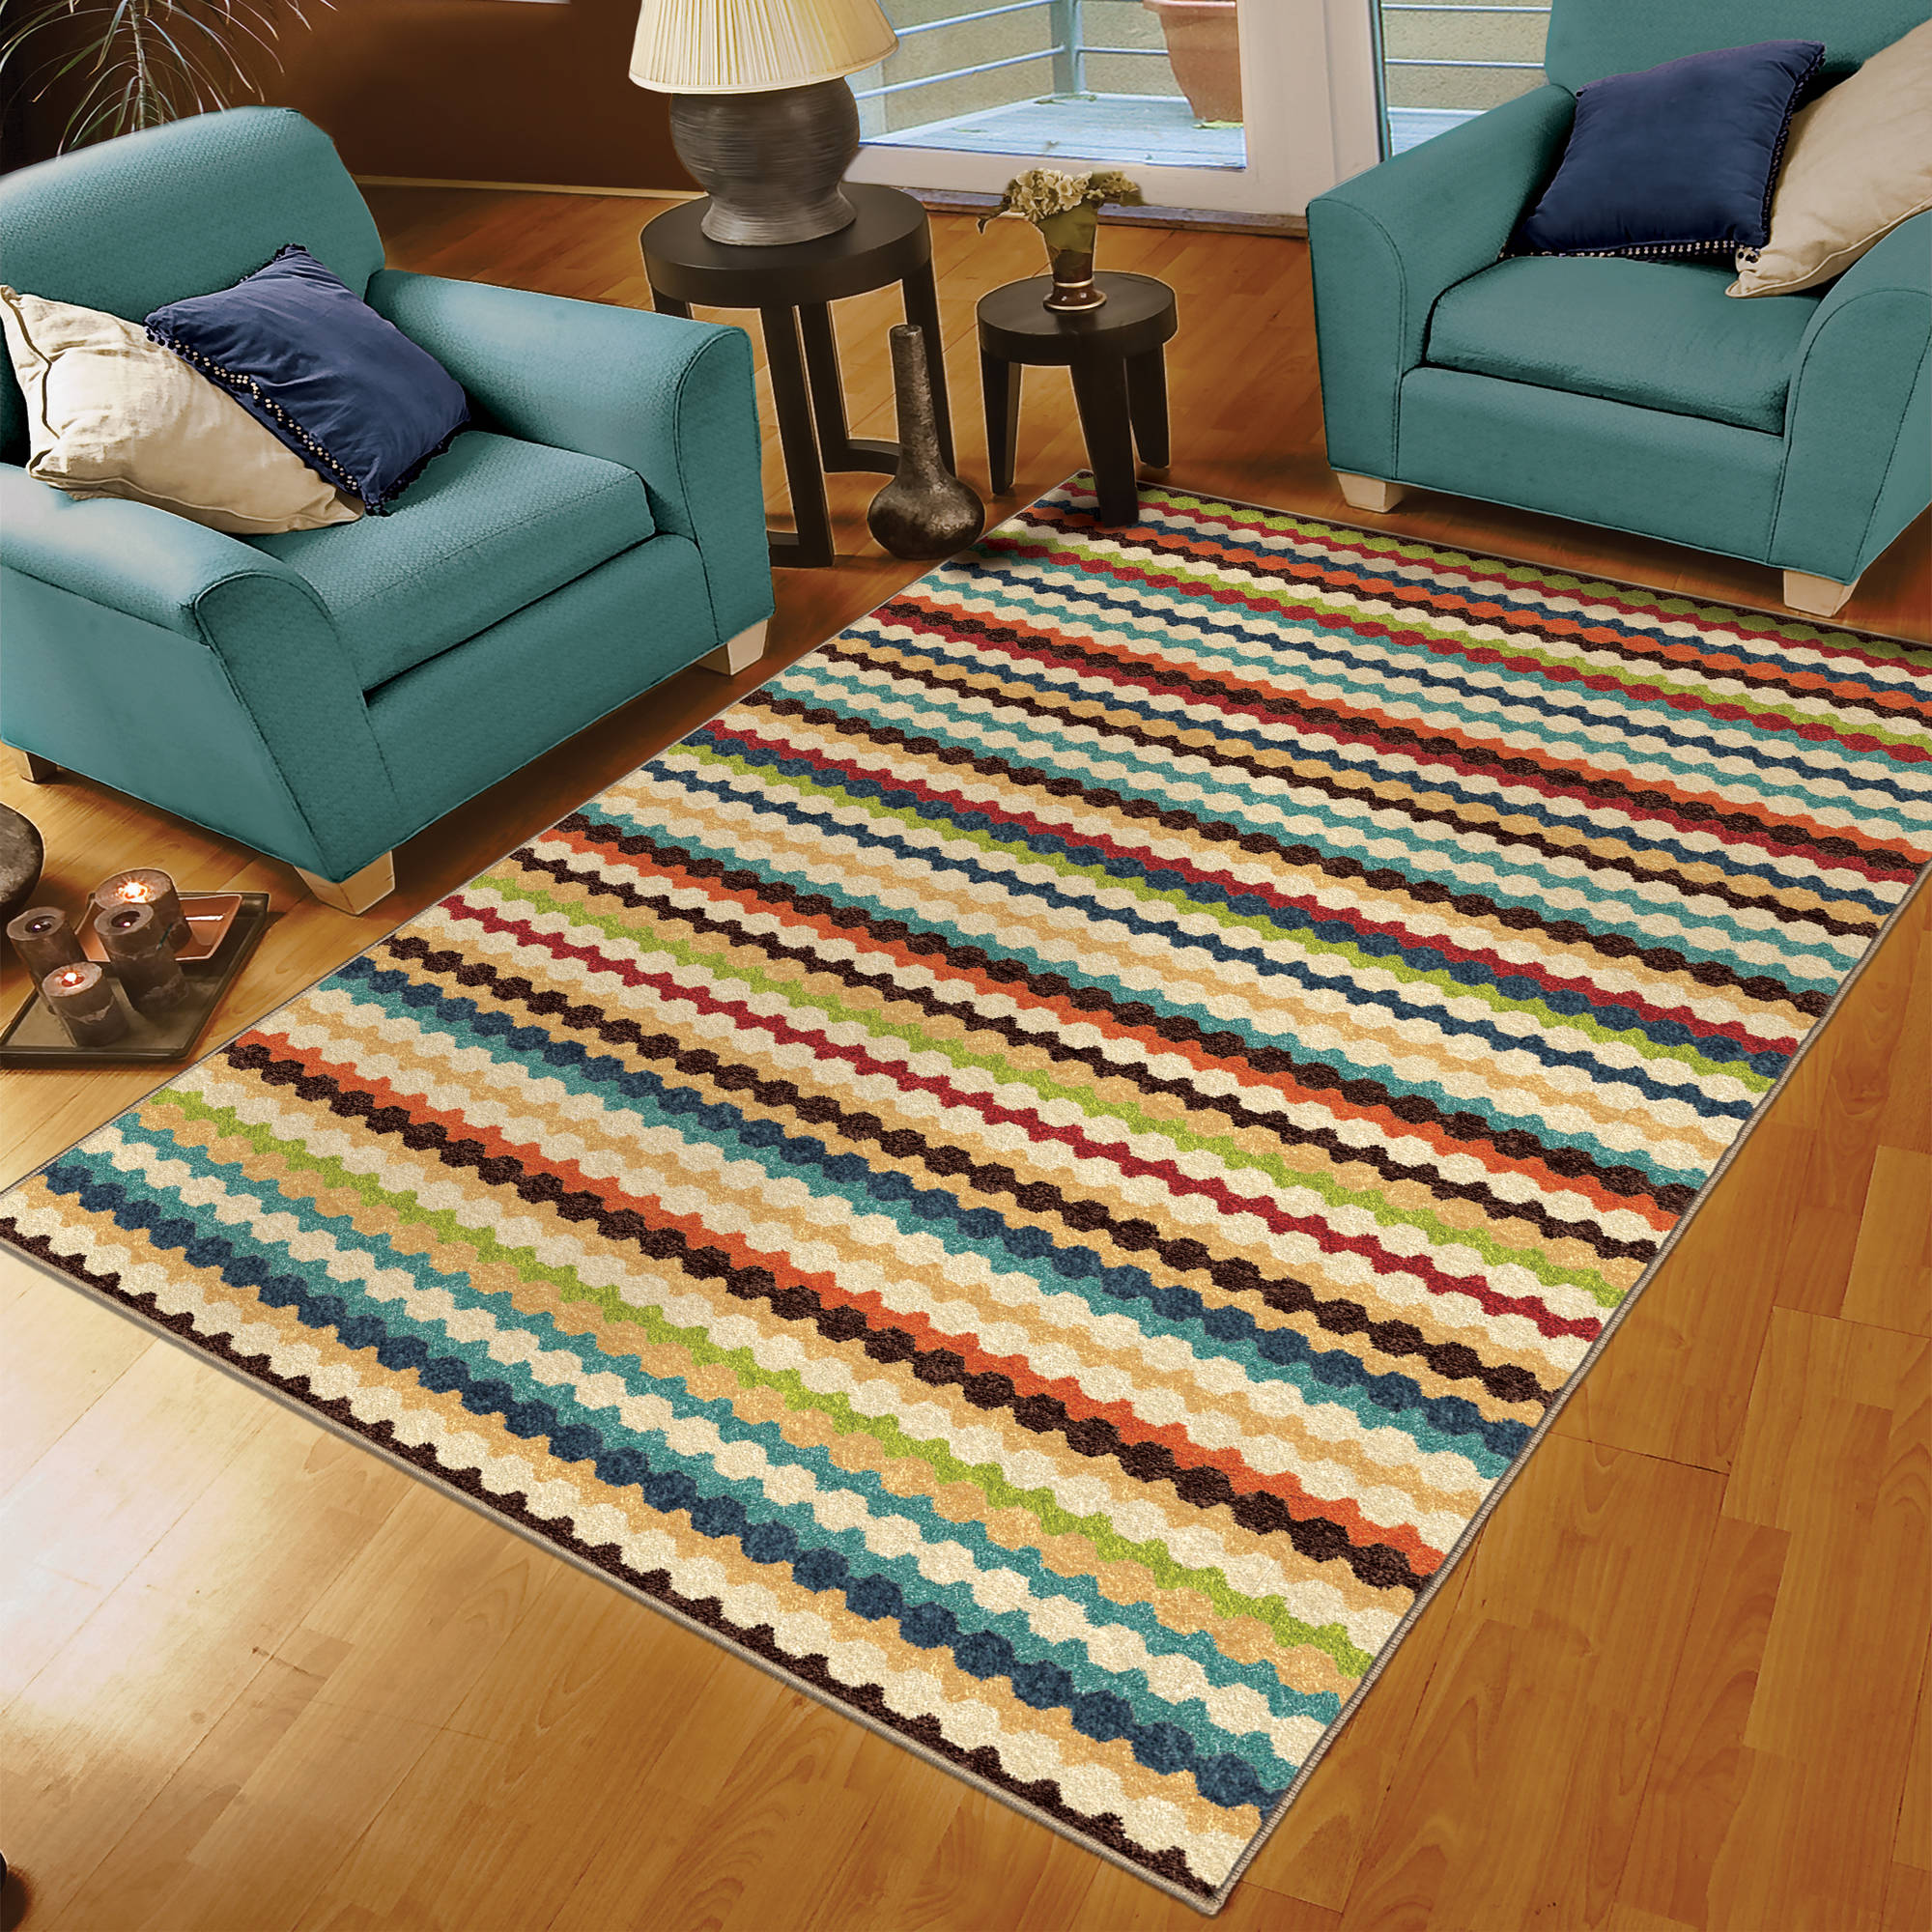 Orian Rugs Indoor Outdoor Nik Nak Multi Colored Area Rug Or Runner